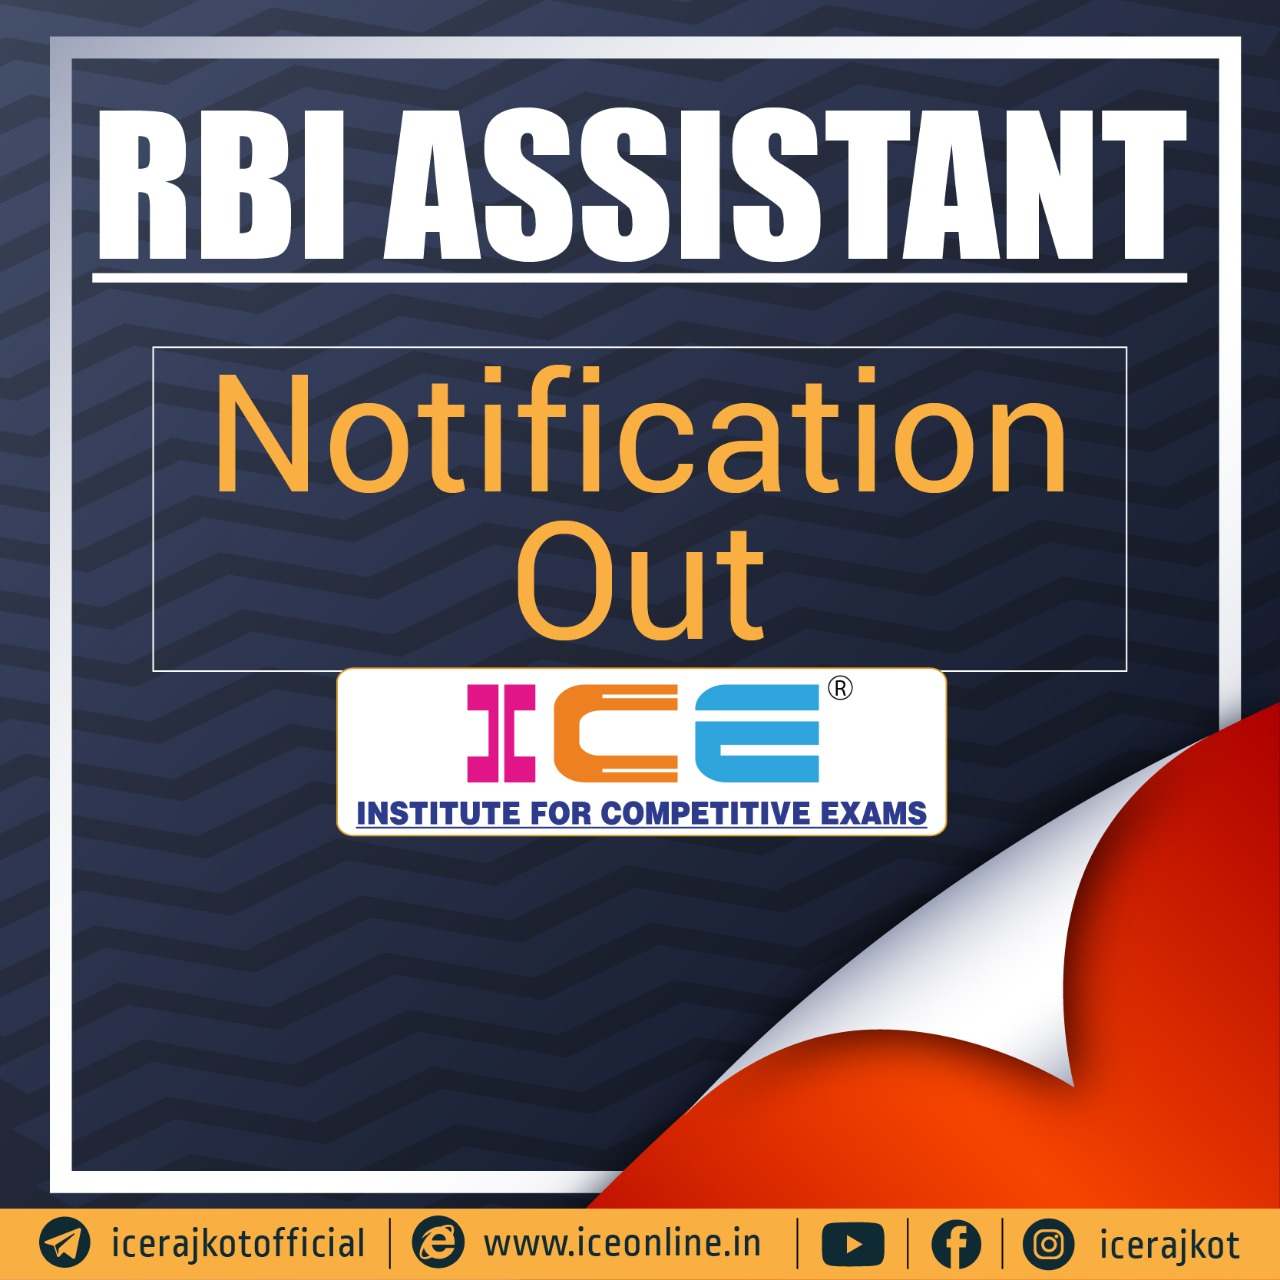 RBI ASSISTANT NOTIFICATION OUT